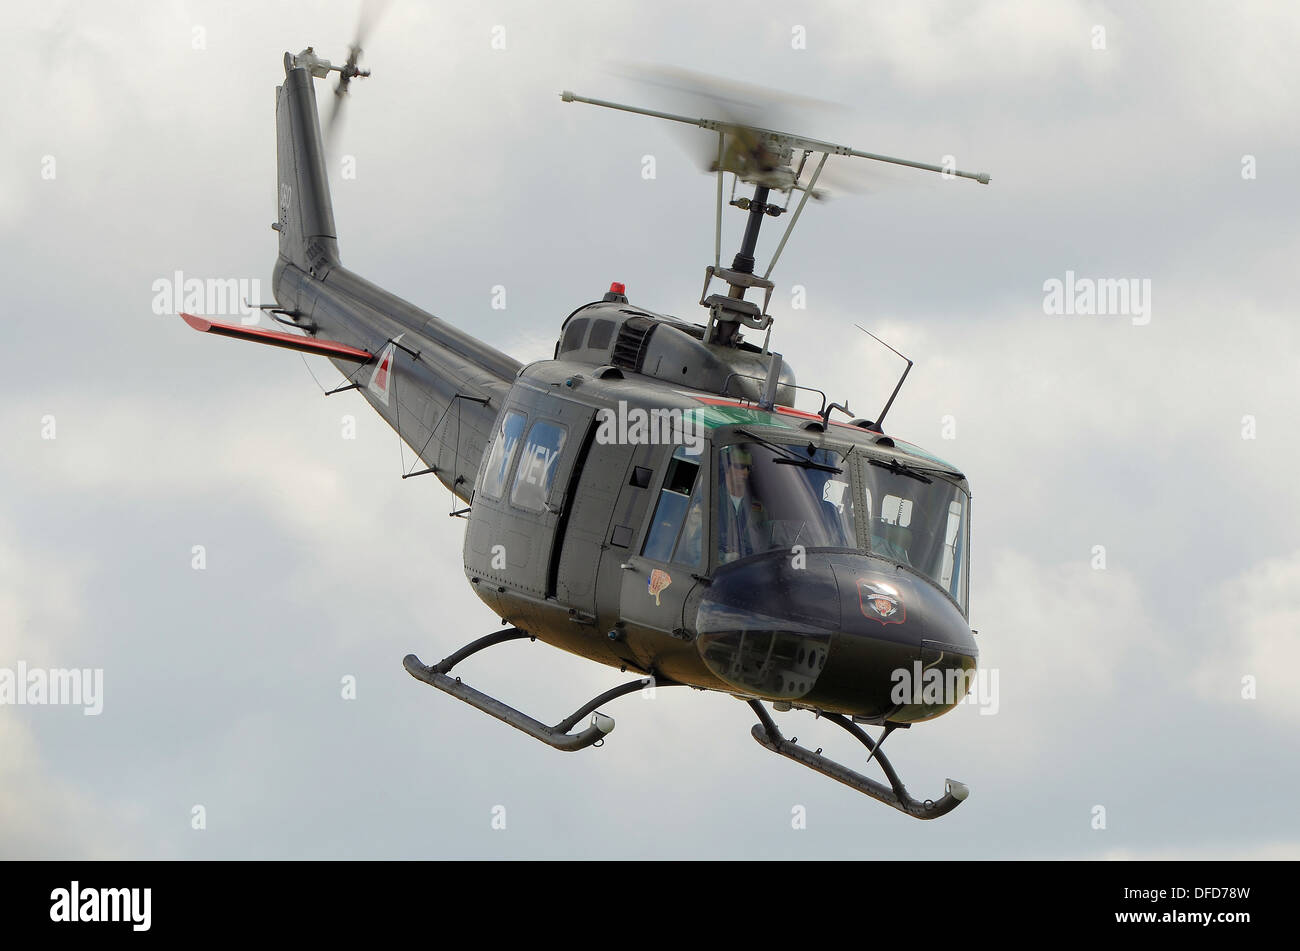 Uh 1 Elicottero : A bell uh huey helicopter at an air display the